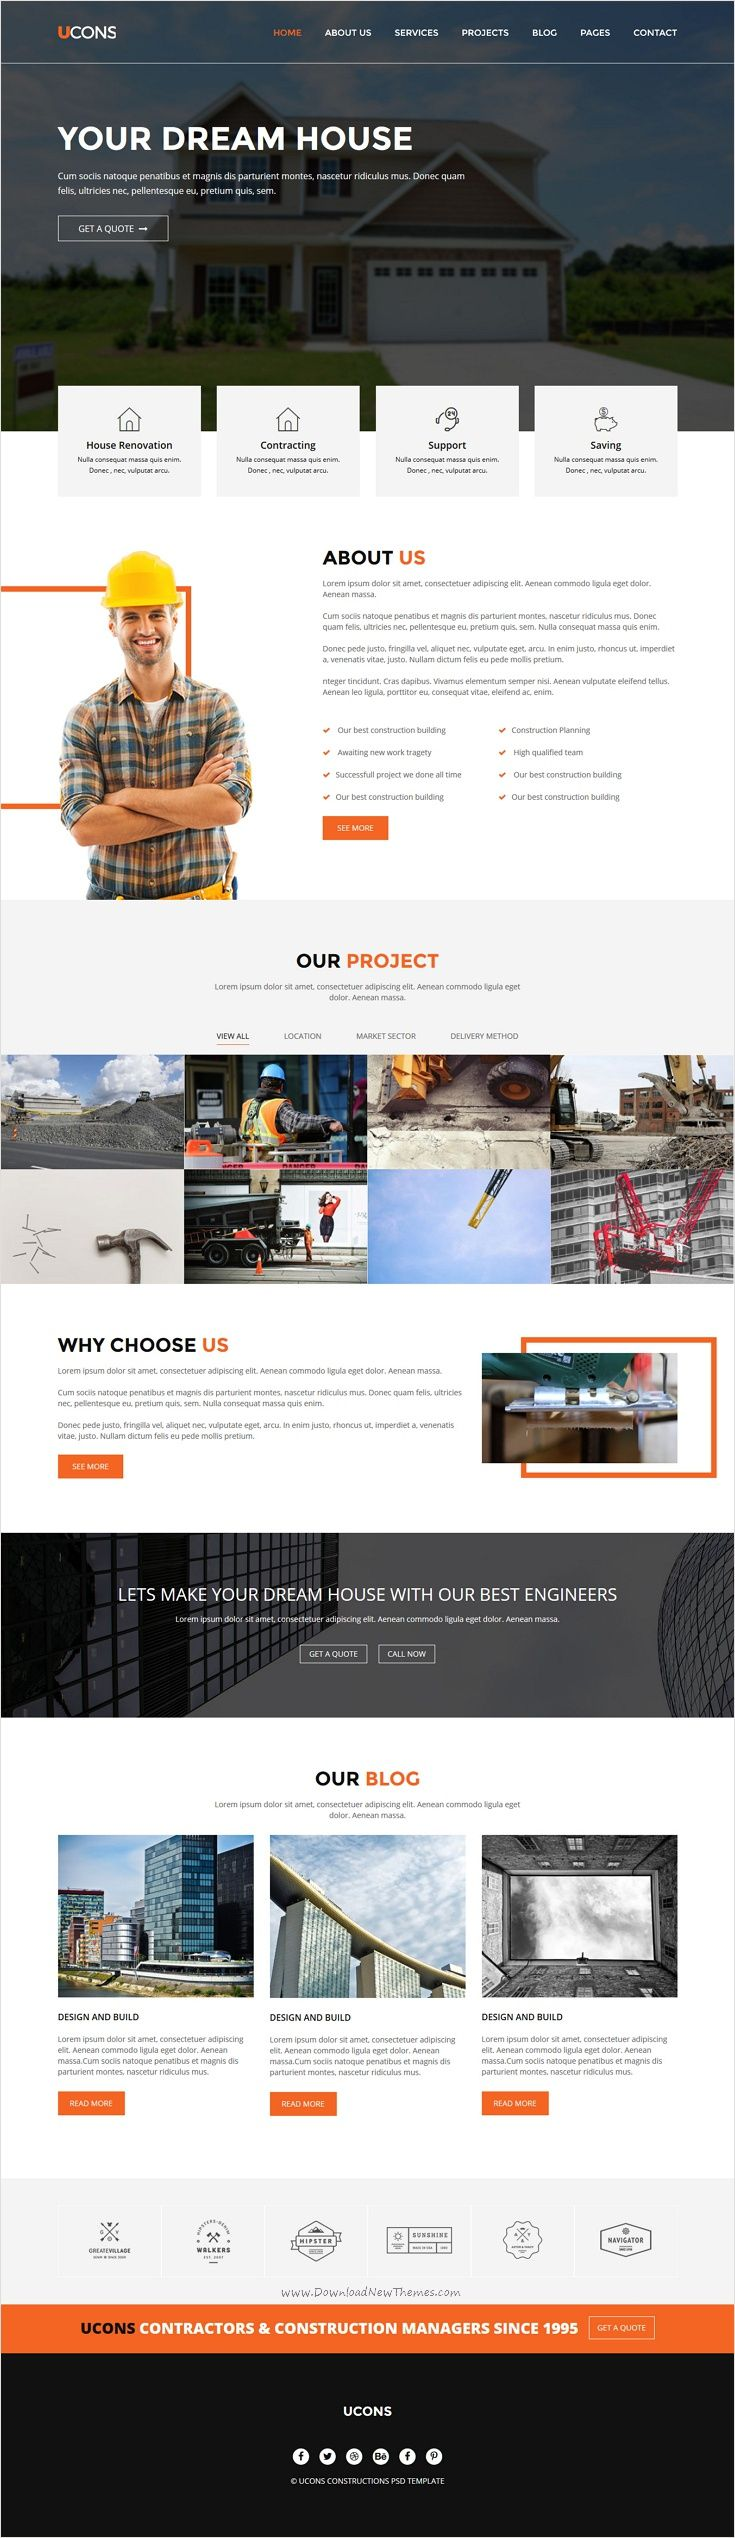 499 best Web Design images on Pinterest | Design websites, Website ...